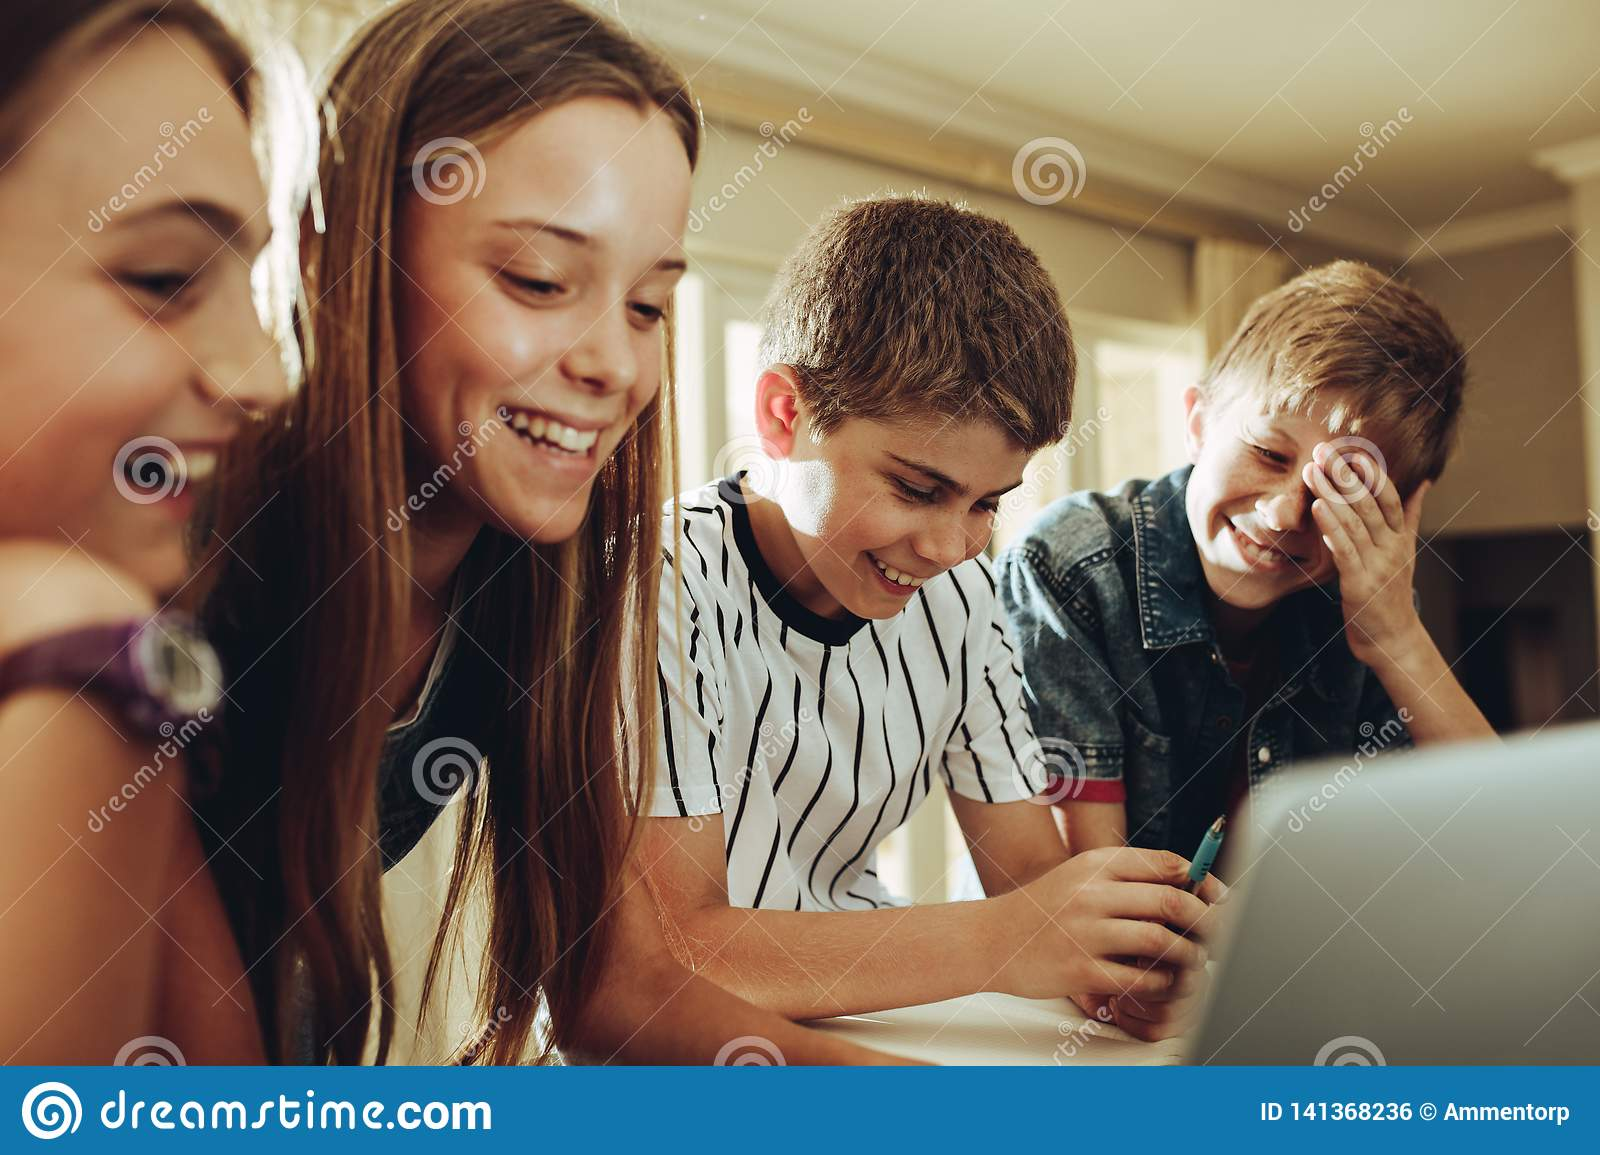 Kids enjoy learning with the help of technology